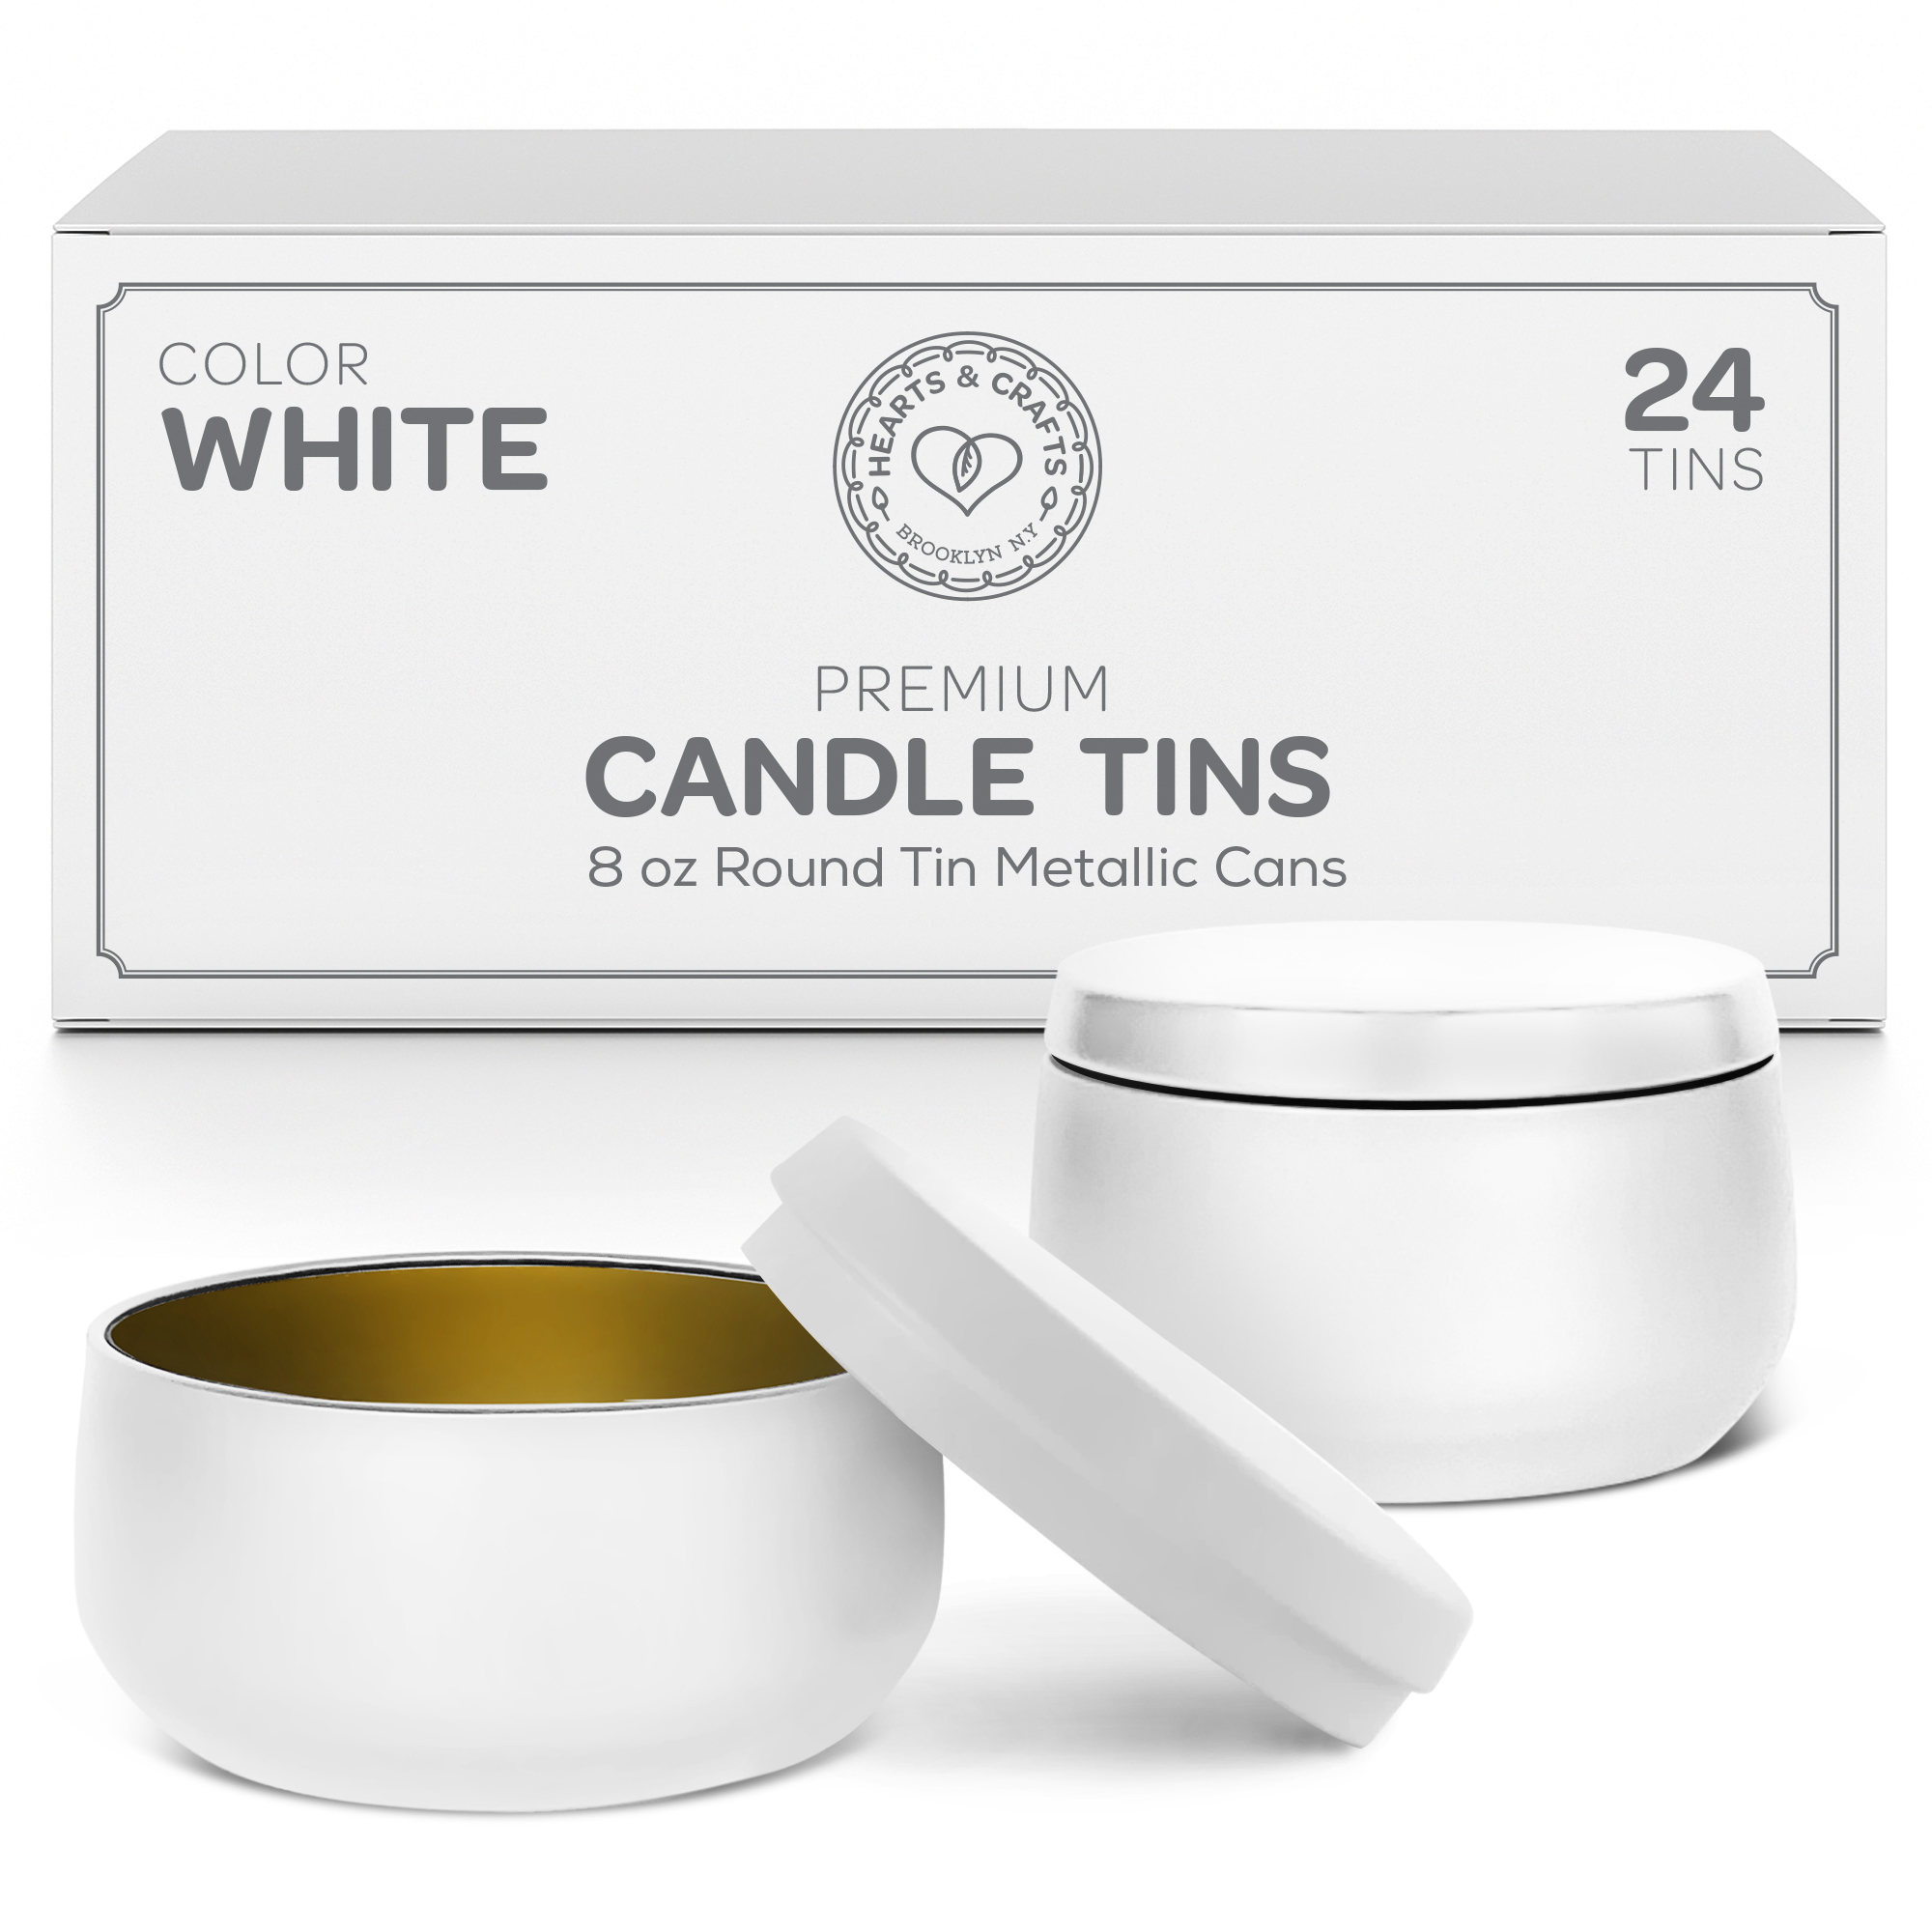 8oz White Candle Tins – 24 Count